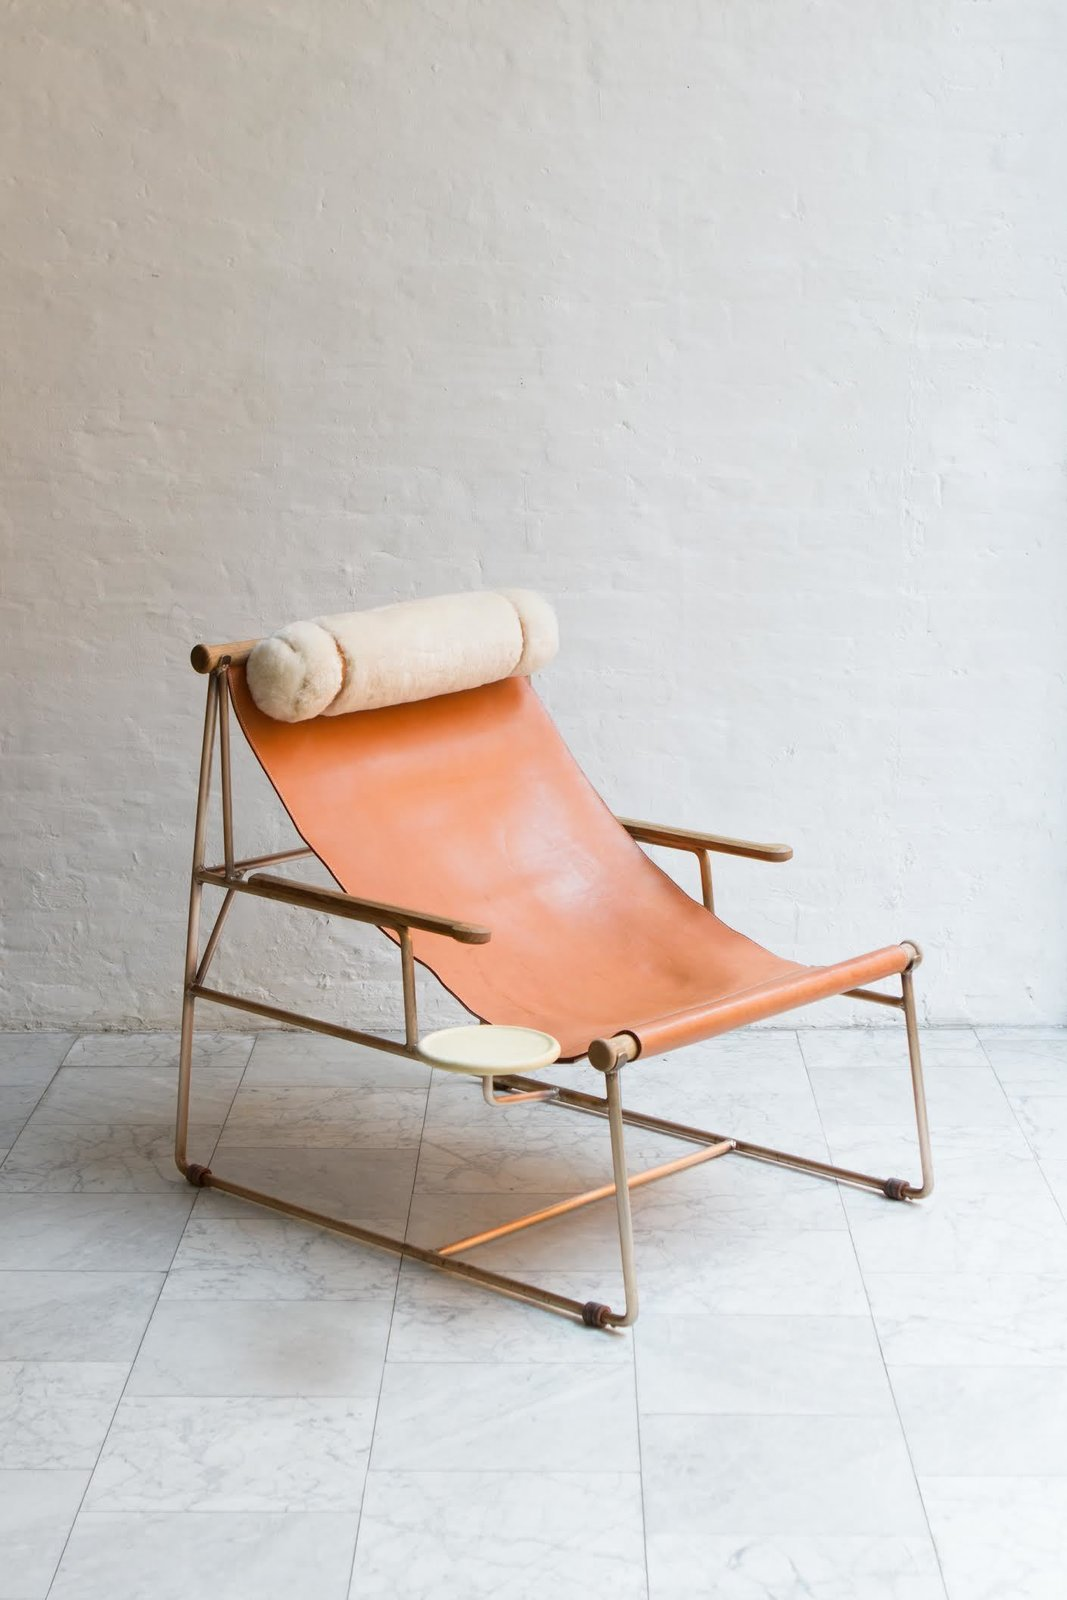 #seatingdesign #leather #tile   100+ Best Modern Seating Designs by Dwell